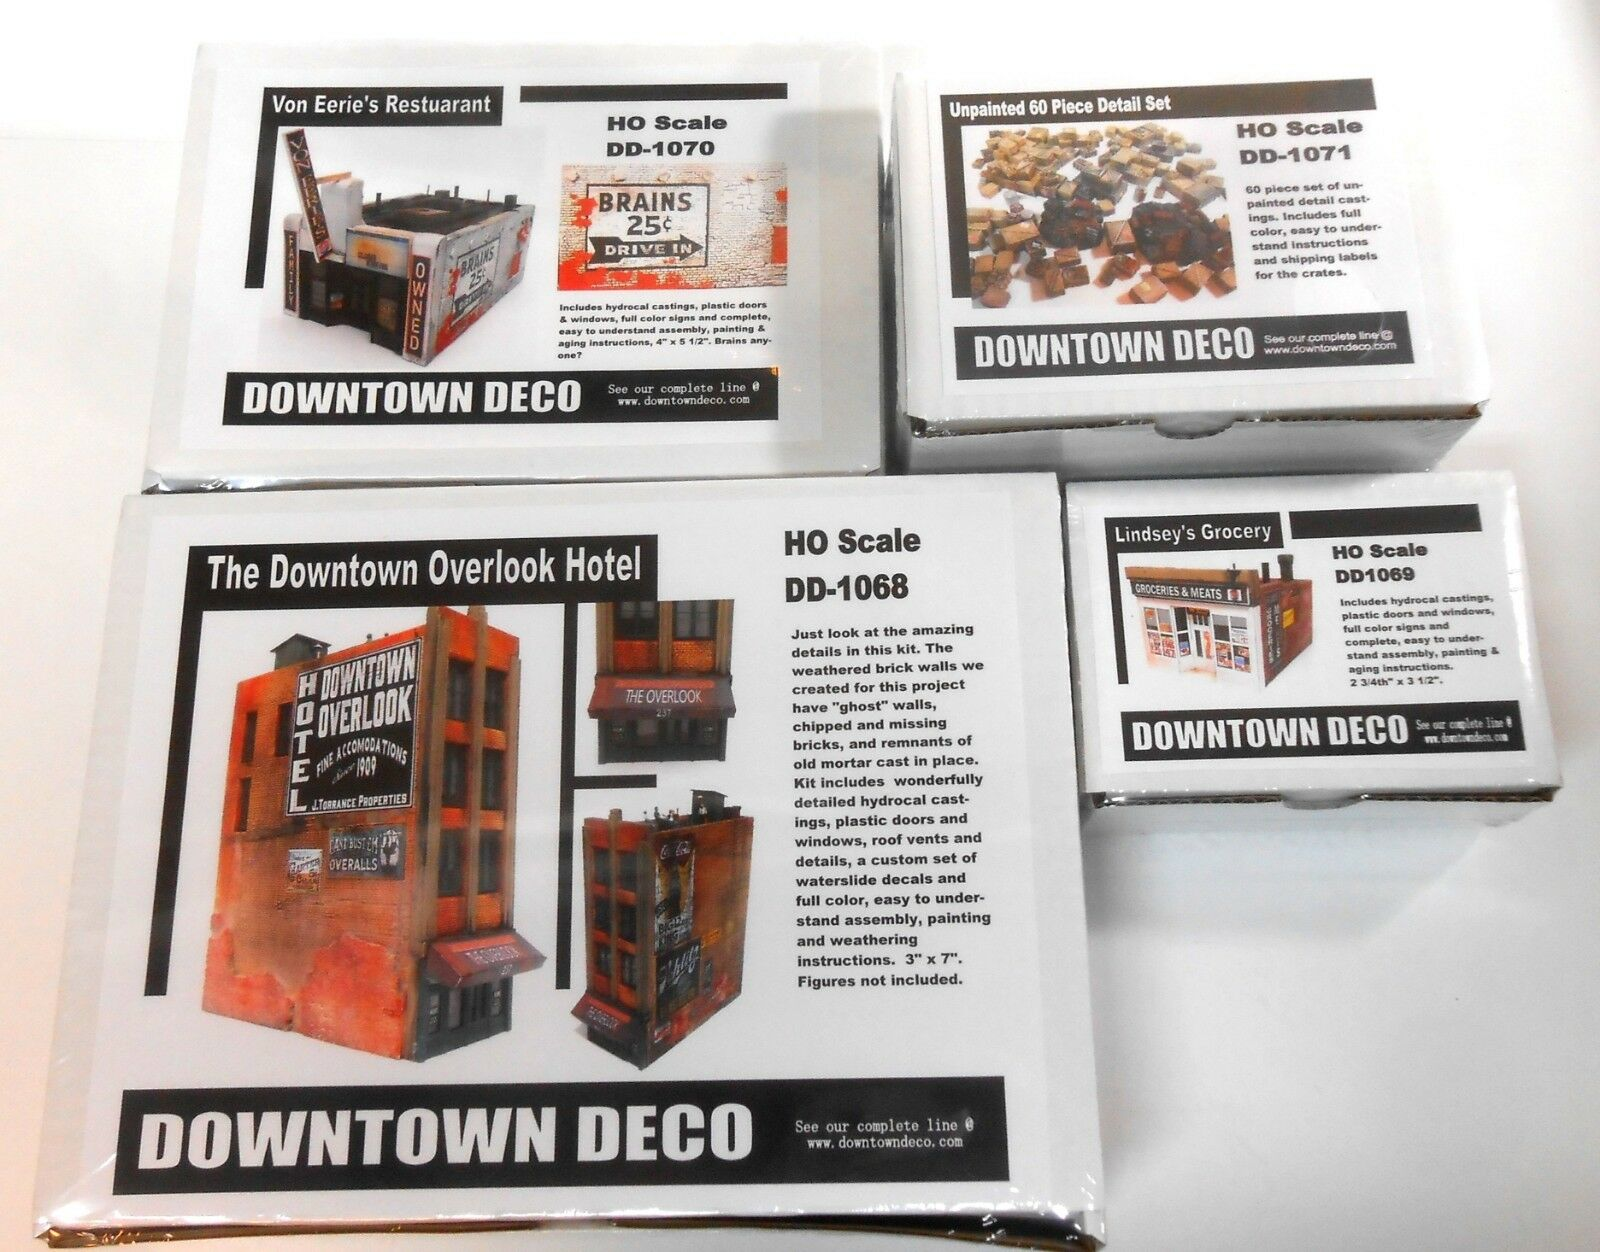 Downtown Deco HO Scale 3 Nuovo Kits Combo Special. Save  70 + Free Bonuses